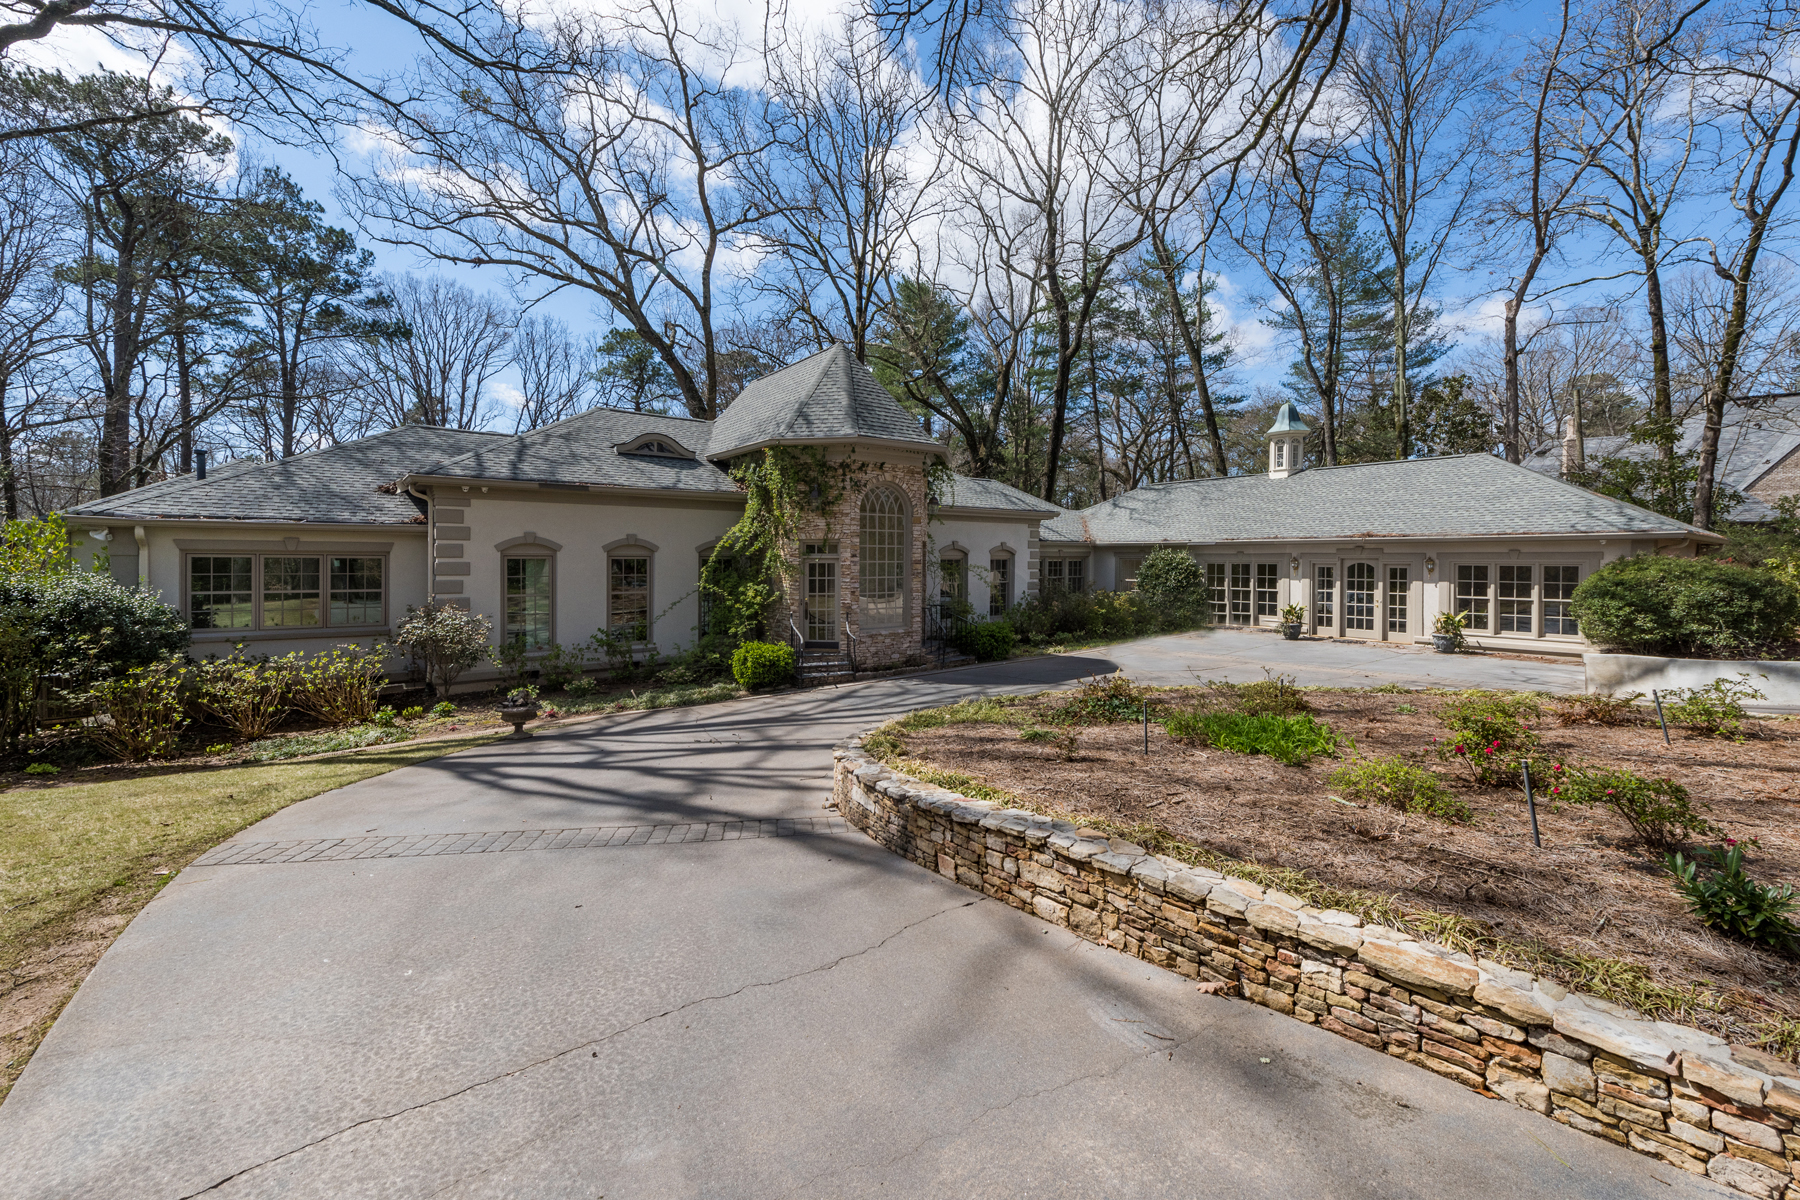 Single Family Home for Sale at Light-filled Updated One Level Home On Private Gated Two Acre Lot 4450 Northside Dr Atlanta, Georgia 30327 United States